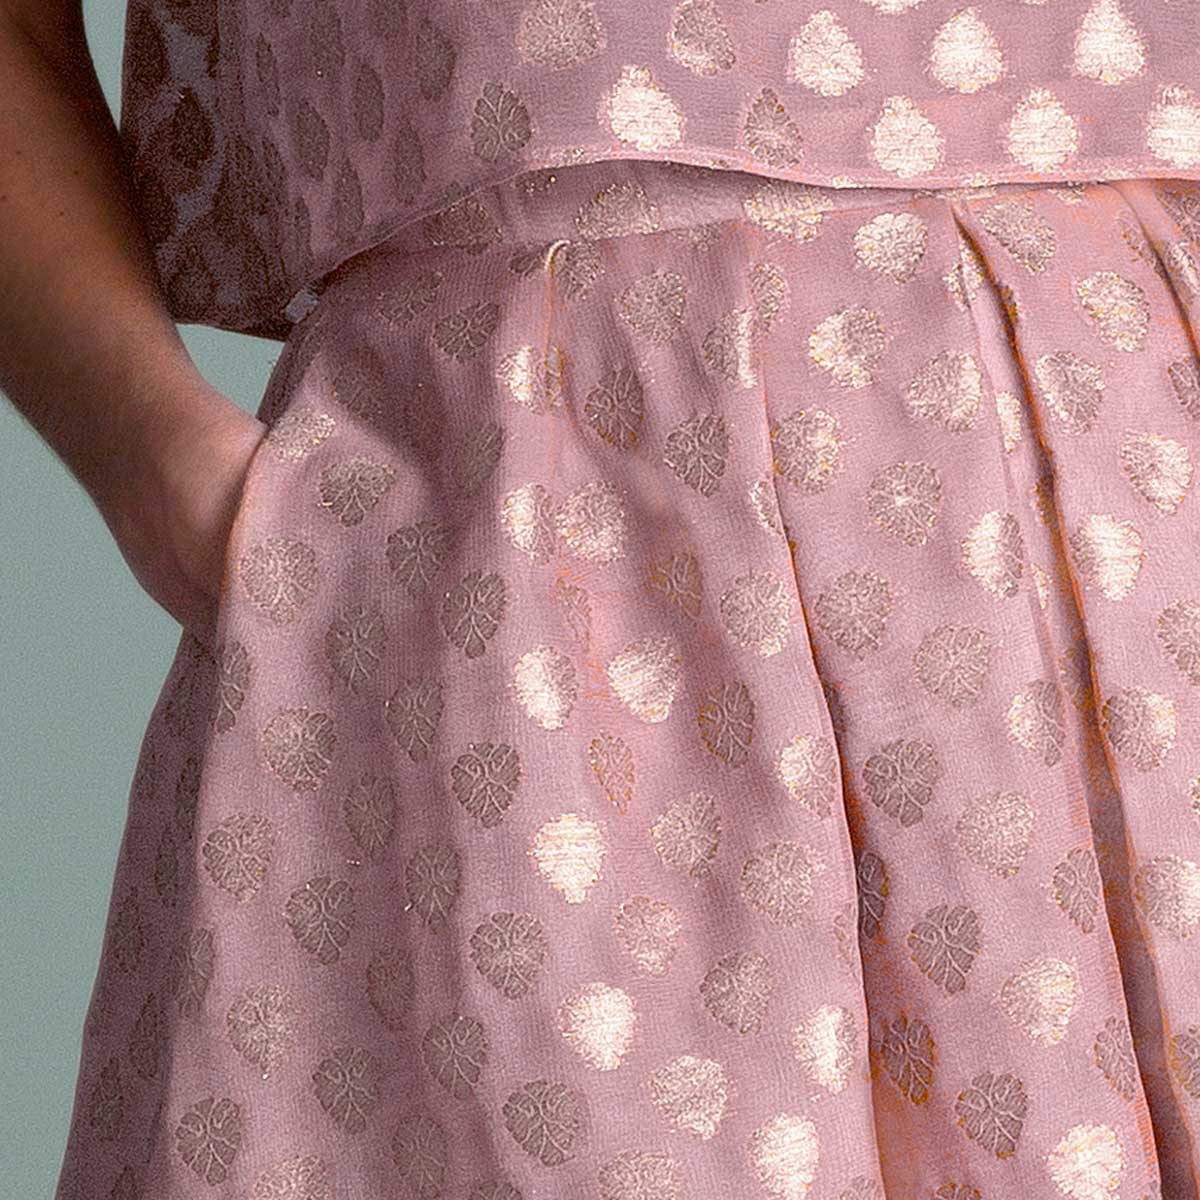 Gudnitz Copenhagen. SS10 Pixie Dust Soft pink. Dress Up. Pink Dress. Dresses. Party dress. Cocktail dress. Evening wear. Dinner dress. Party dress. Designer dress. Casual dress. Summer dress. Spring dress